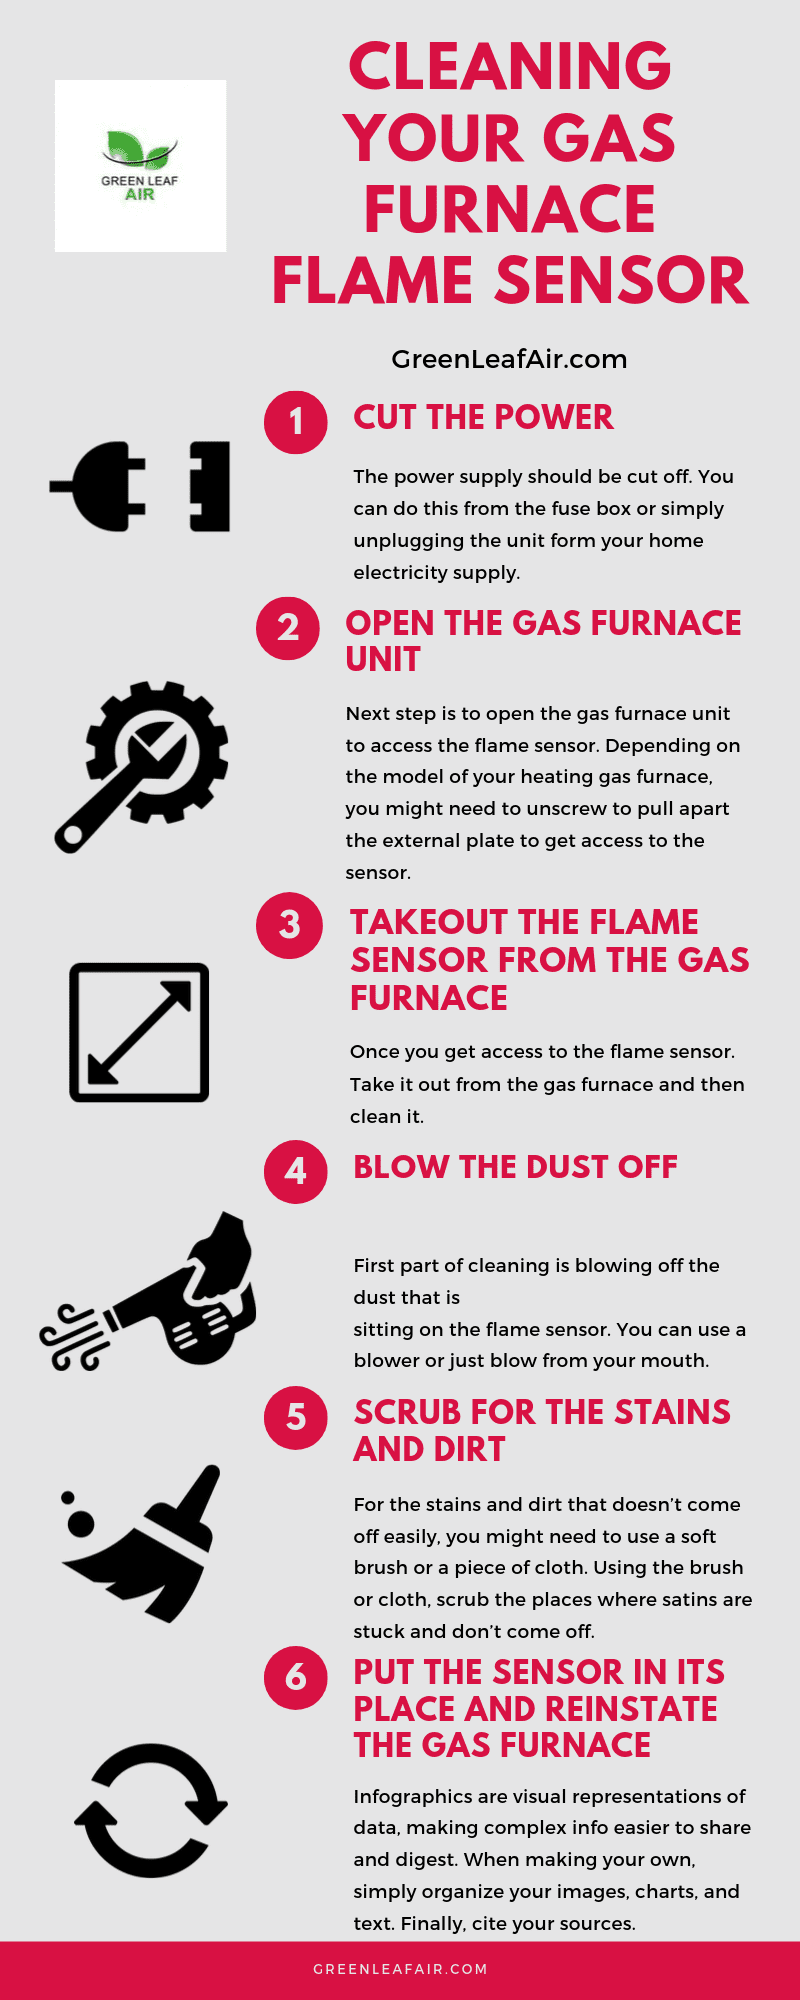 How To Clean Your Gas Furnace Flame Sensor